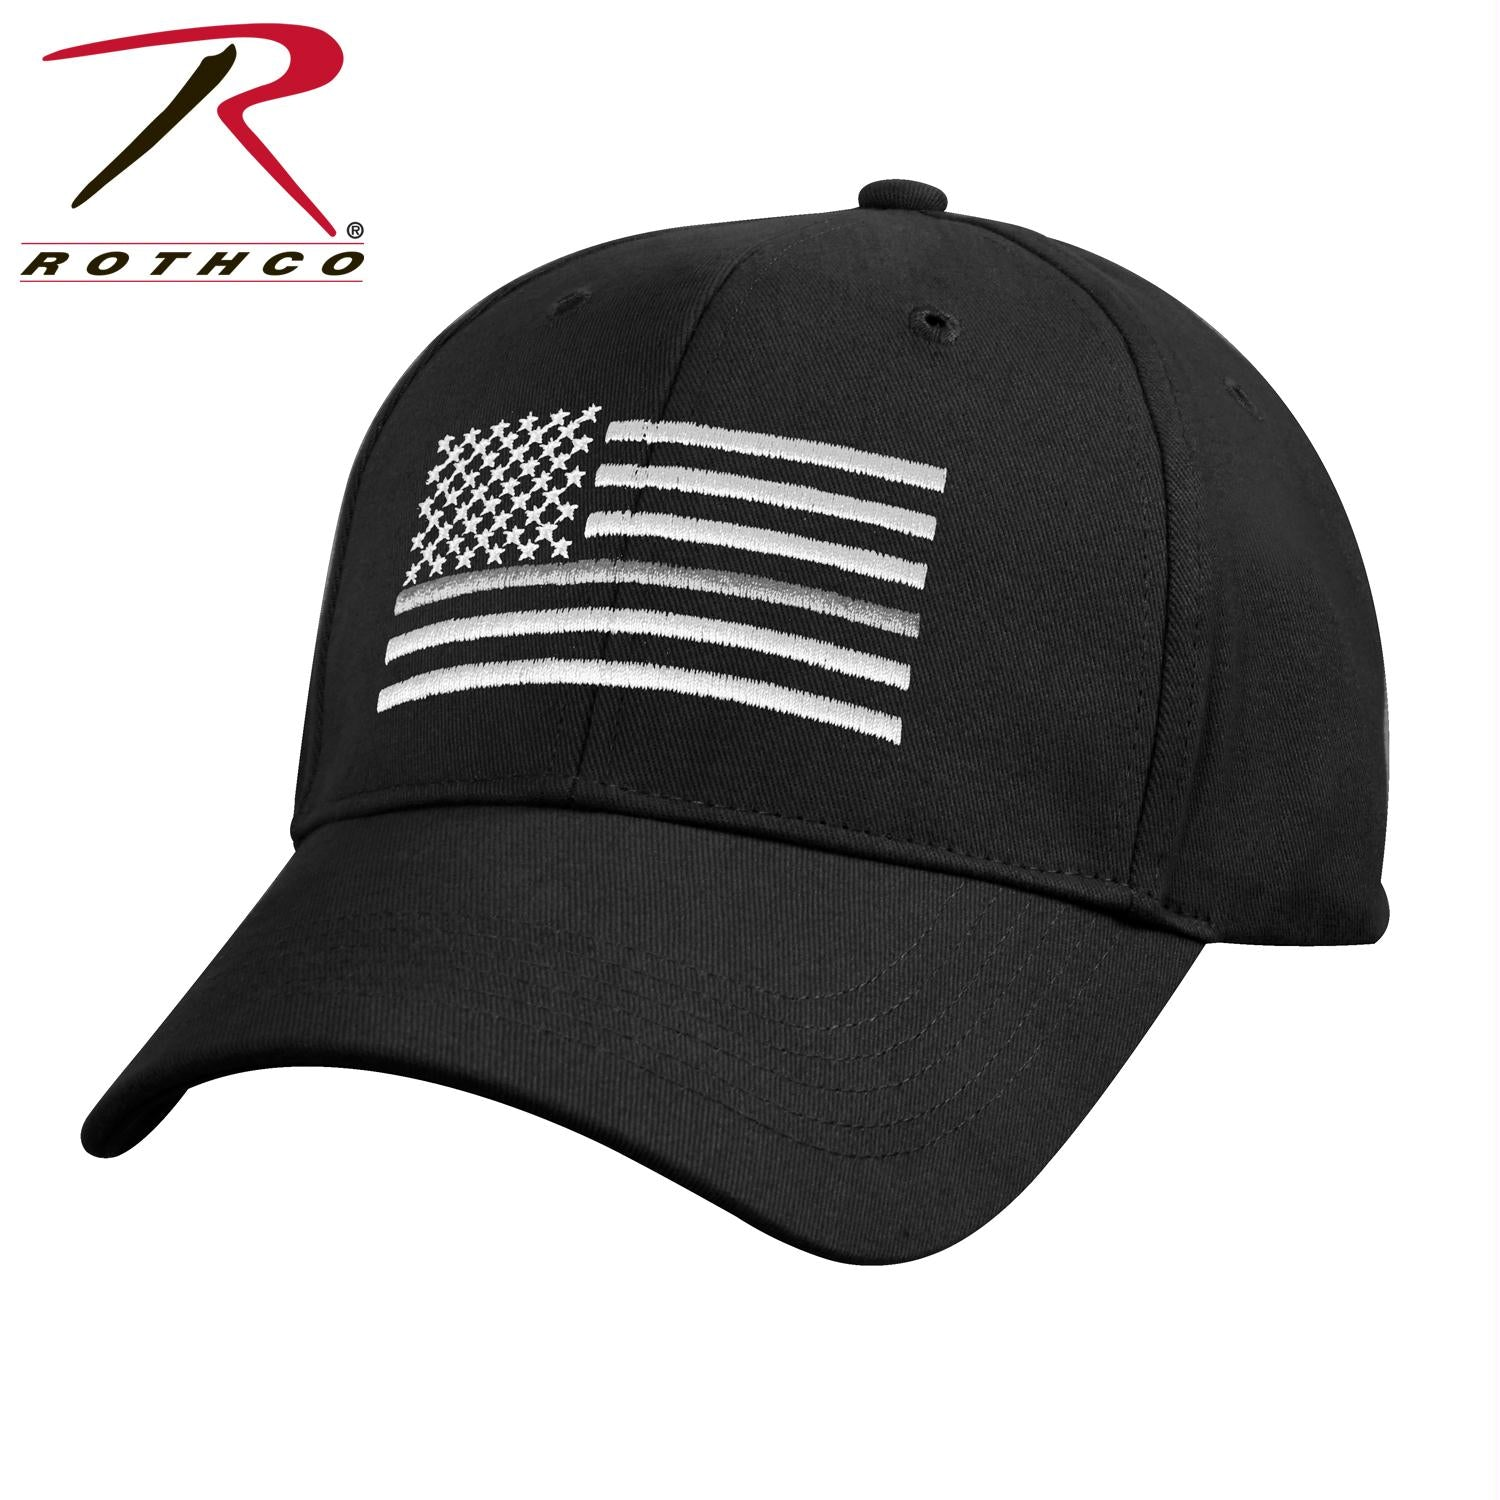 Rothco Thin Silver Line Flag Low Pro Cap - Black / One Size